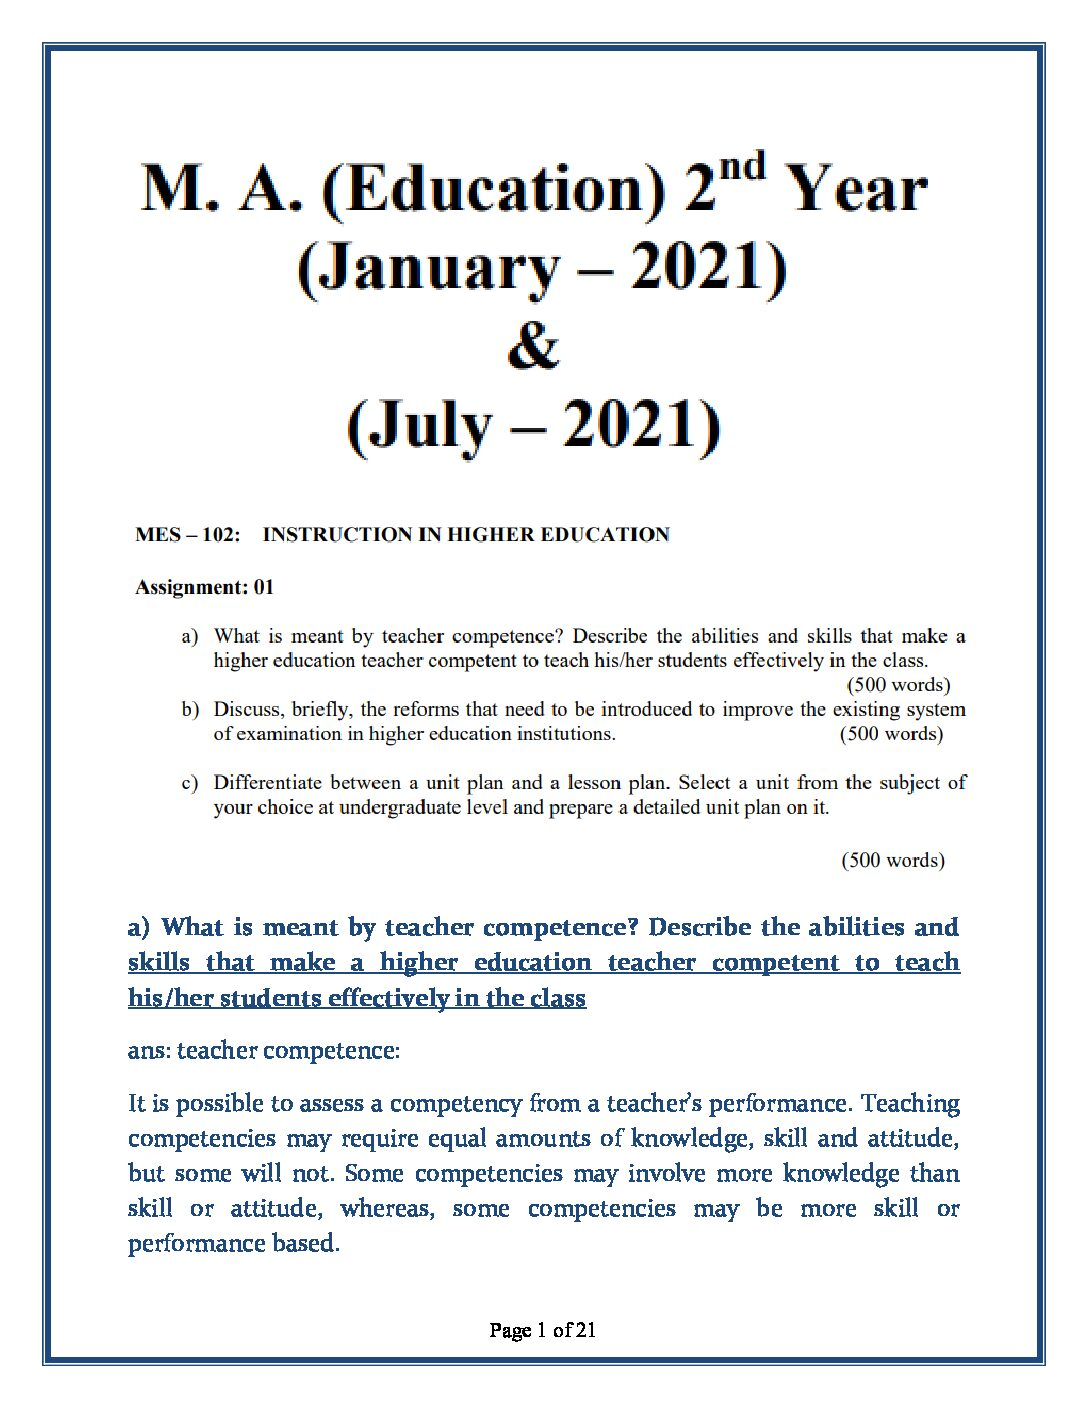 MES-102 Instruction in Higher Education Solved Assignment 2021 in English